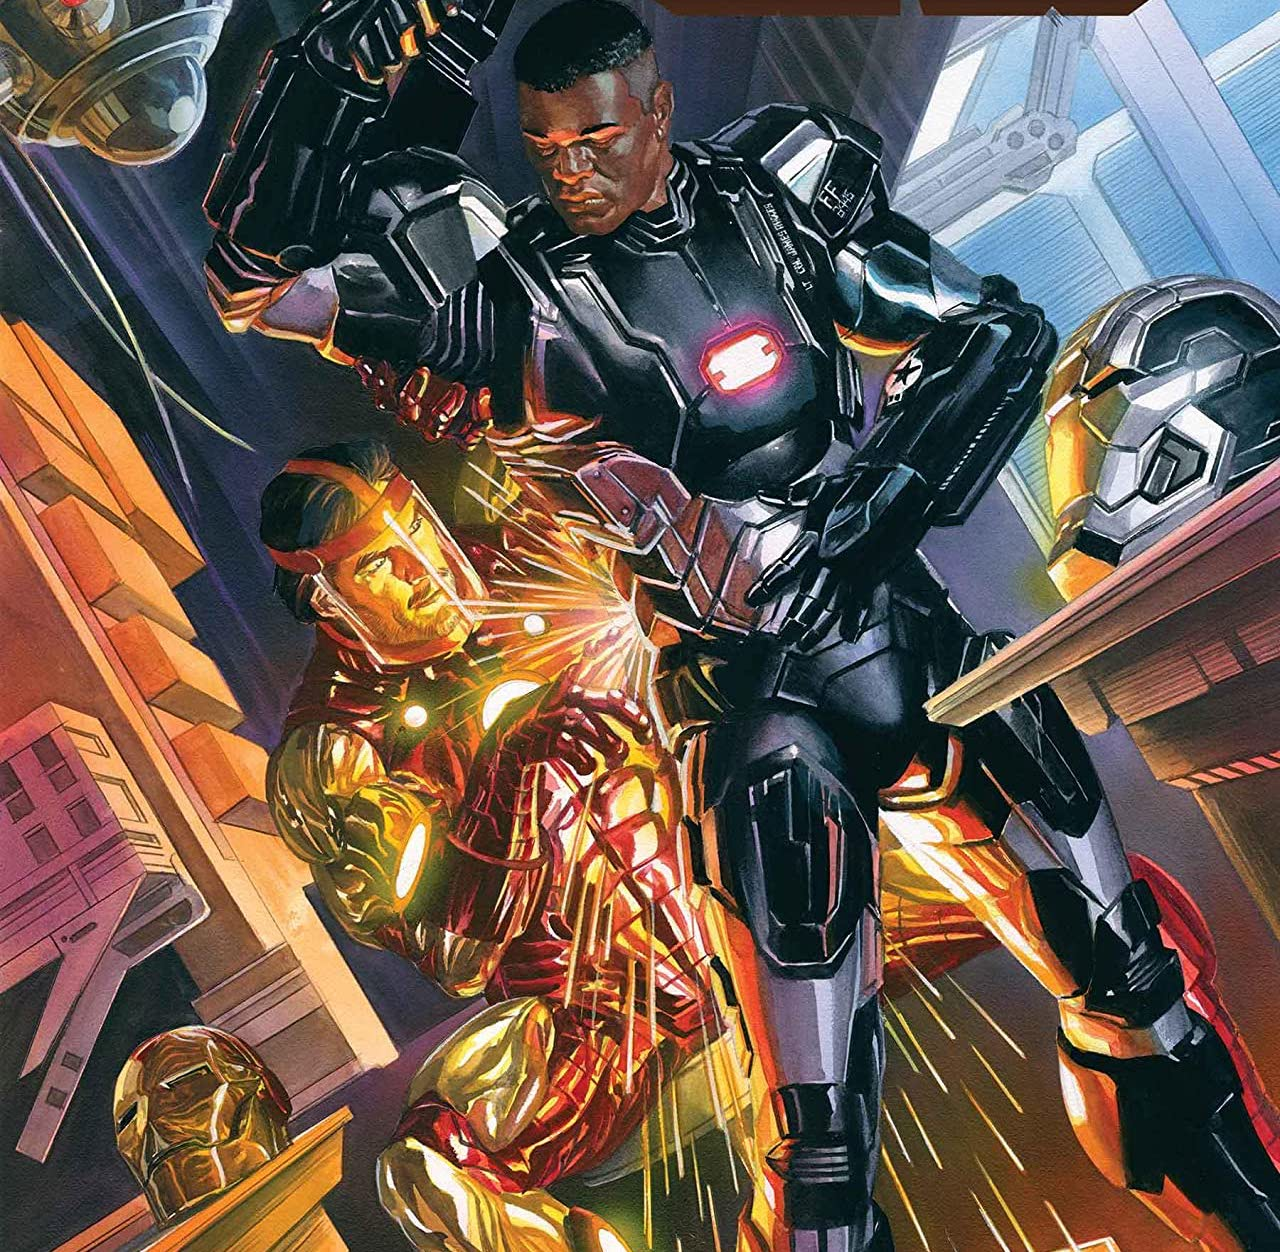 'Iron Man' #7 juggles spectacle, stakes, and sci-fi